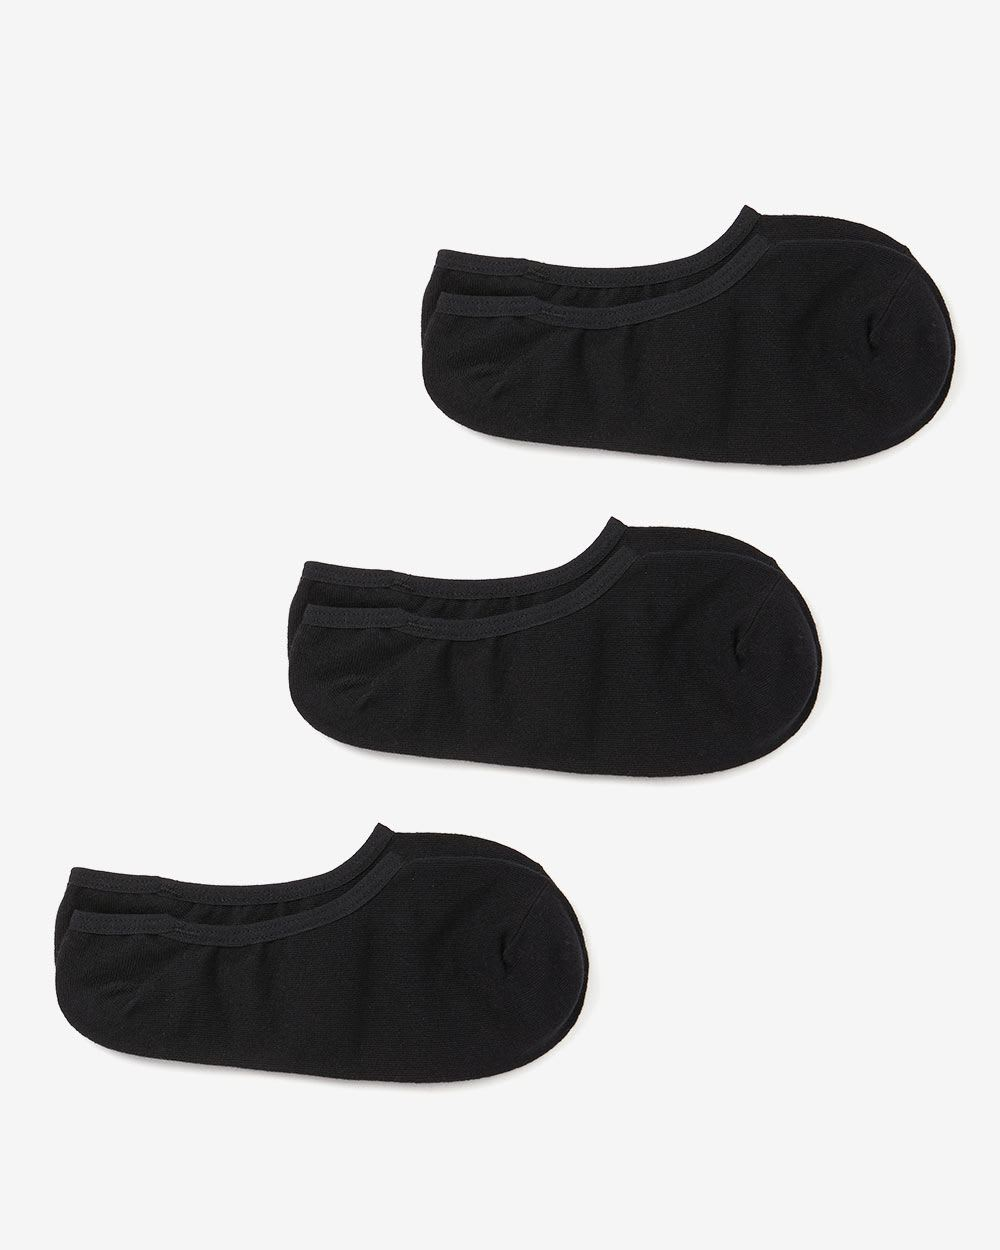 Set of 3 Pairs of No-Show Socks